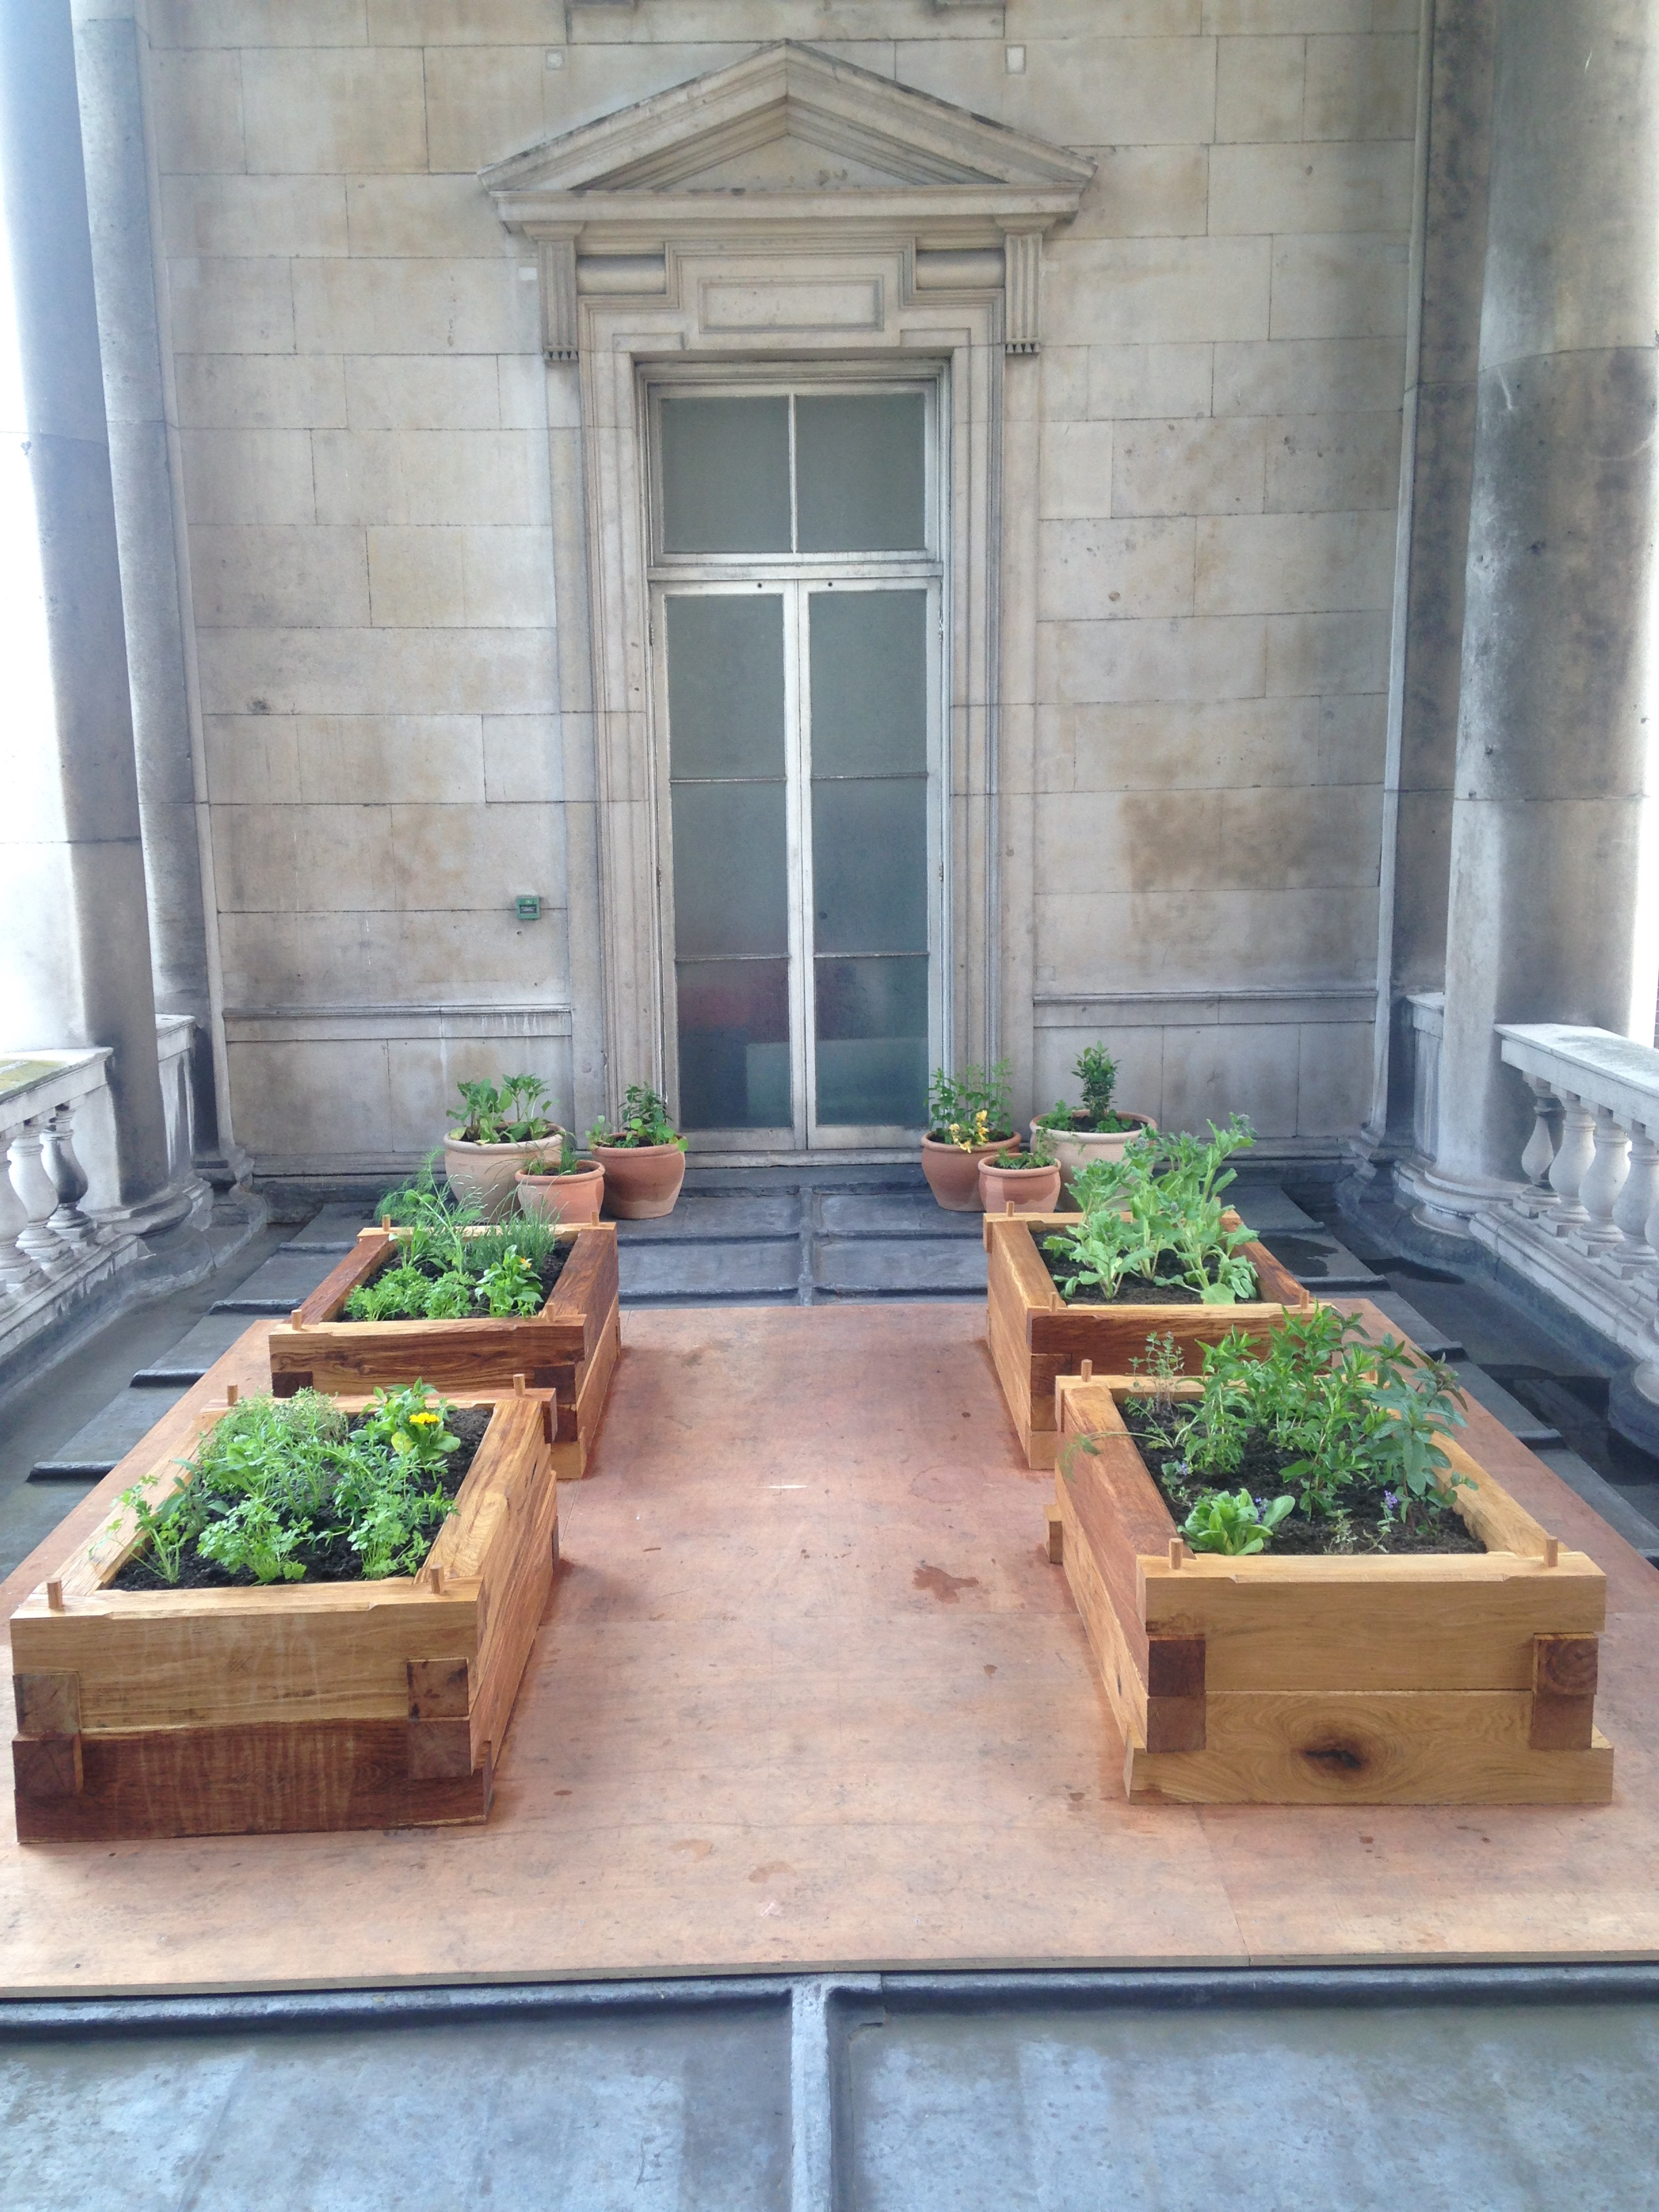 Small, experimental, bee friendly herb garden for Tom's Kitchen on one of the balconies.